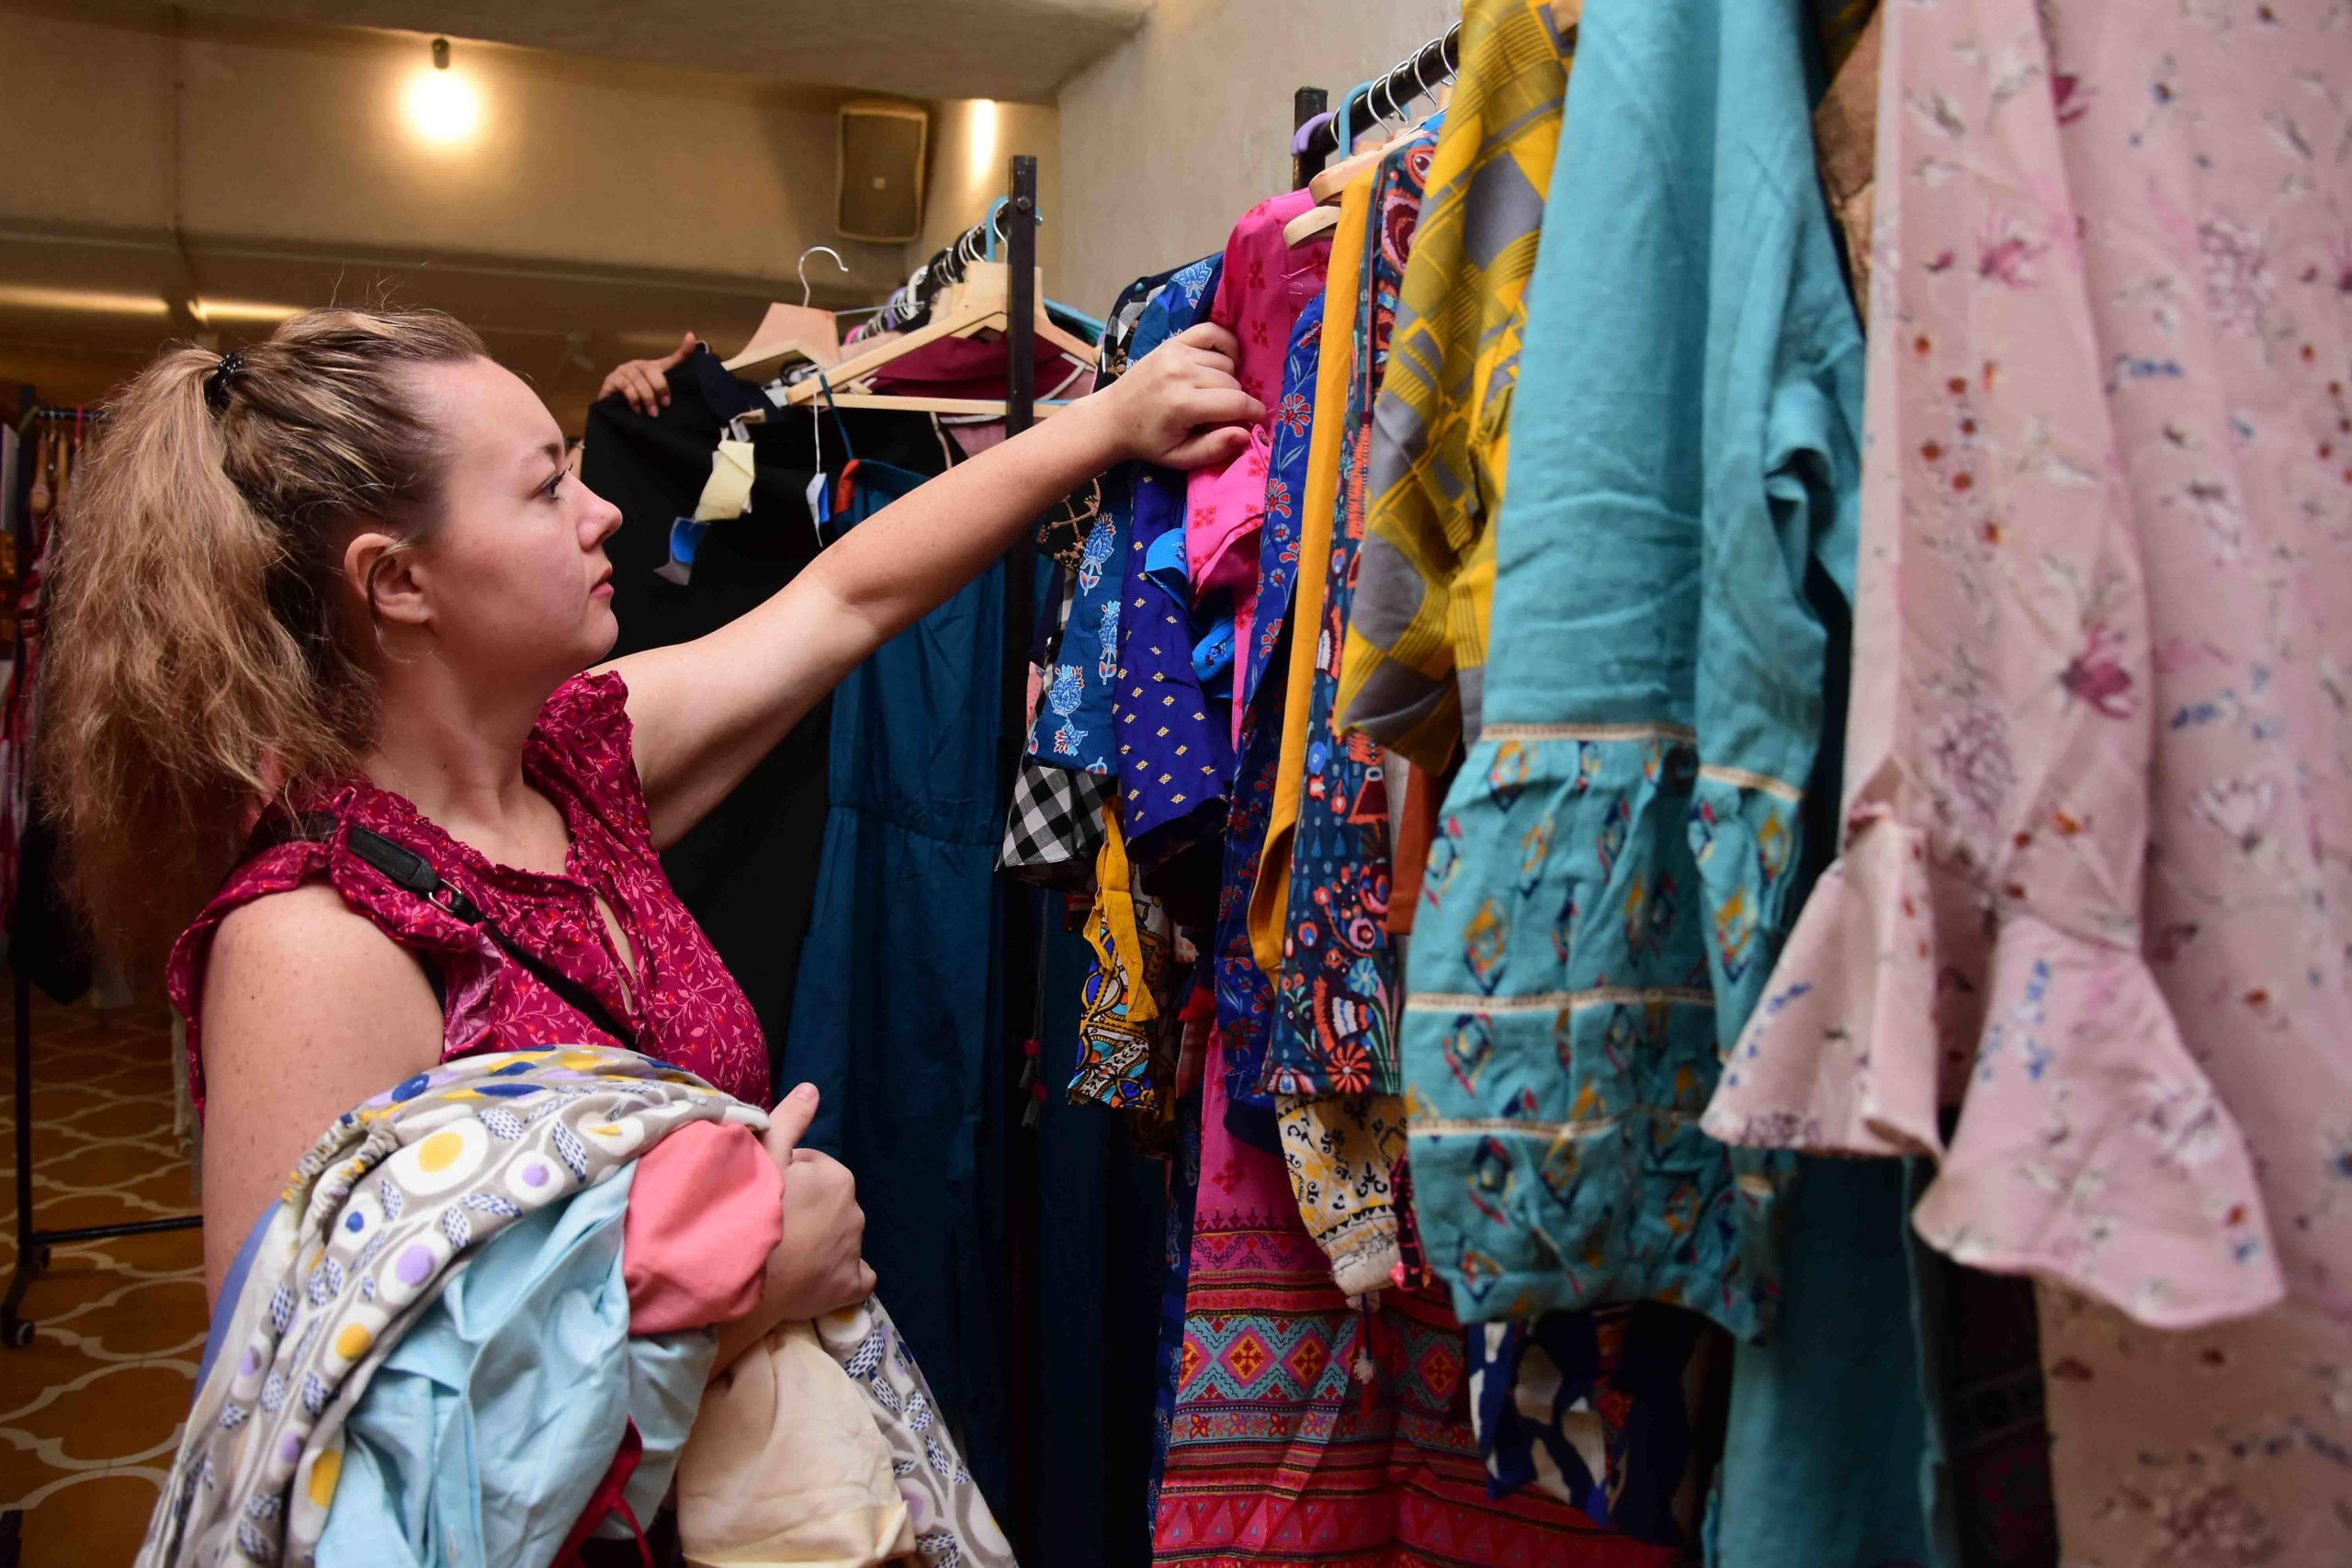 Evelyn Sharma's Seams for Dreams hosts sustainable Garage Sale to help the needy